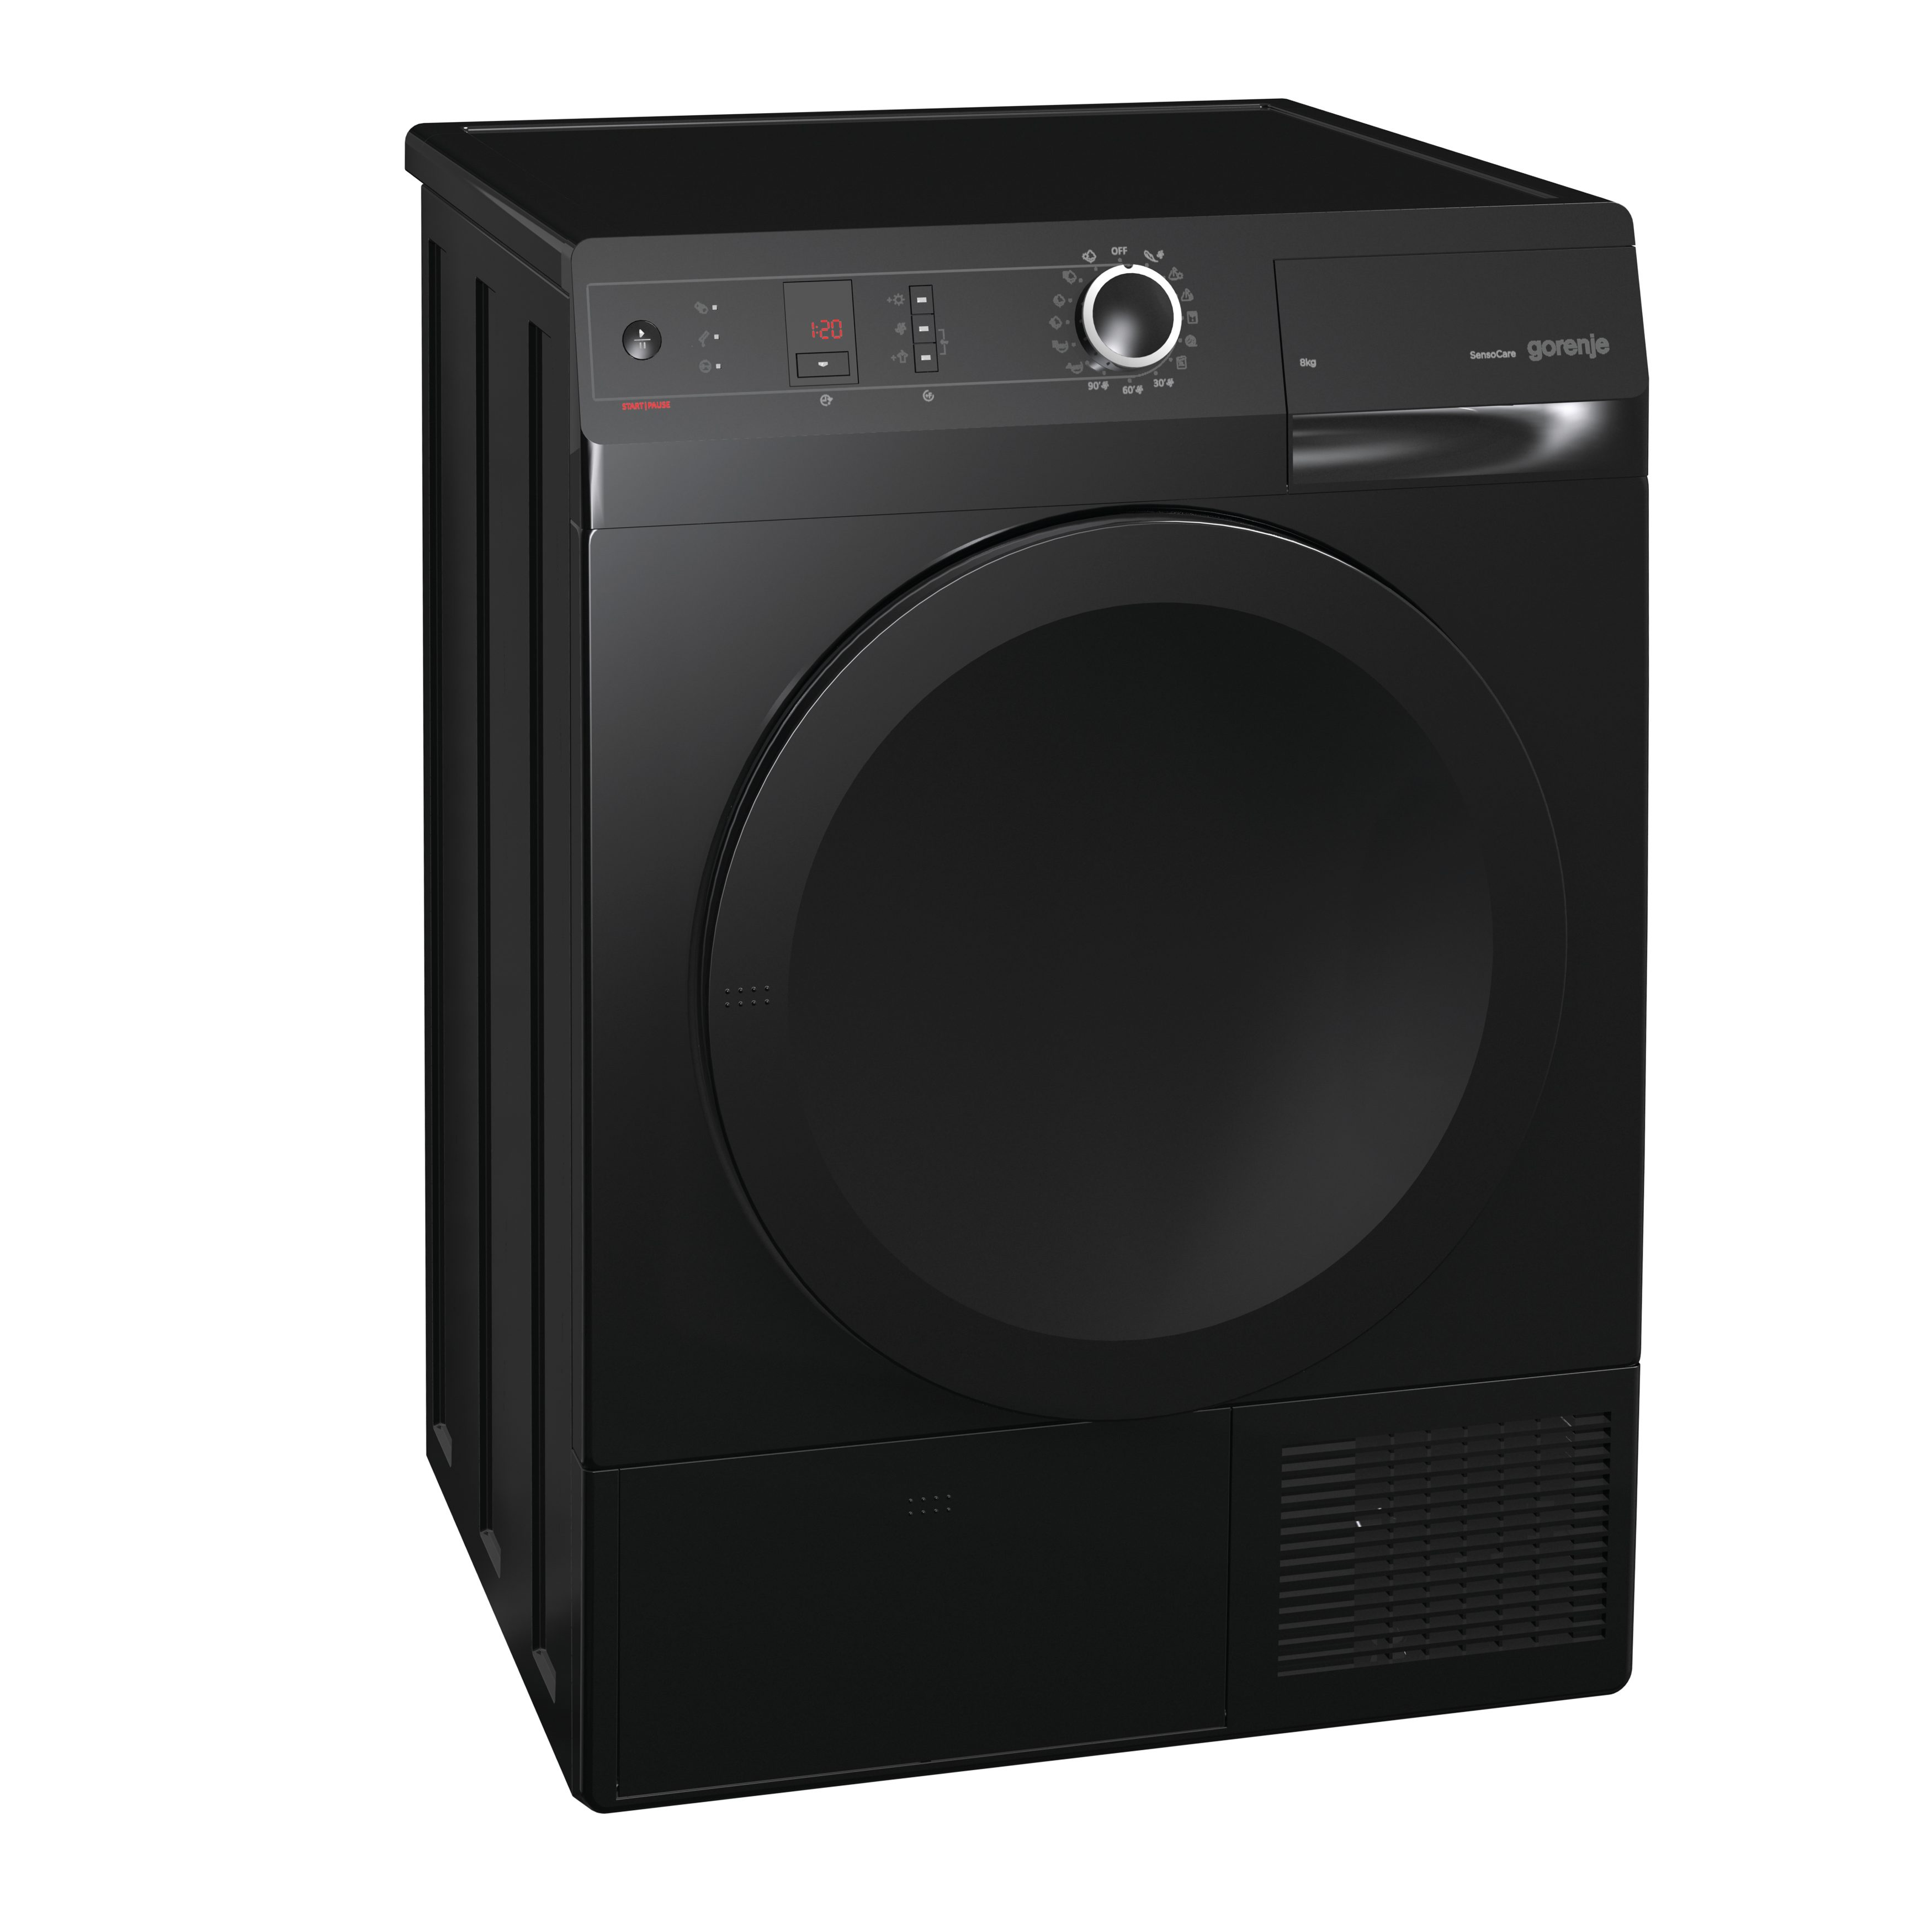 s che linge condensation d8565nb gorenje. Black Bedroom Furniture Sets. Home Design Ideas